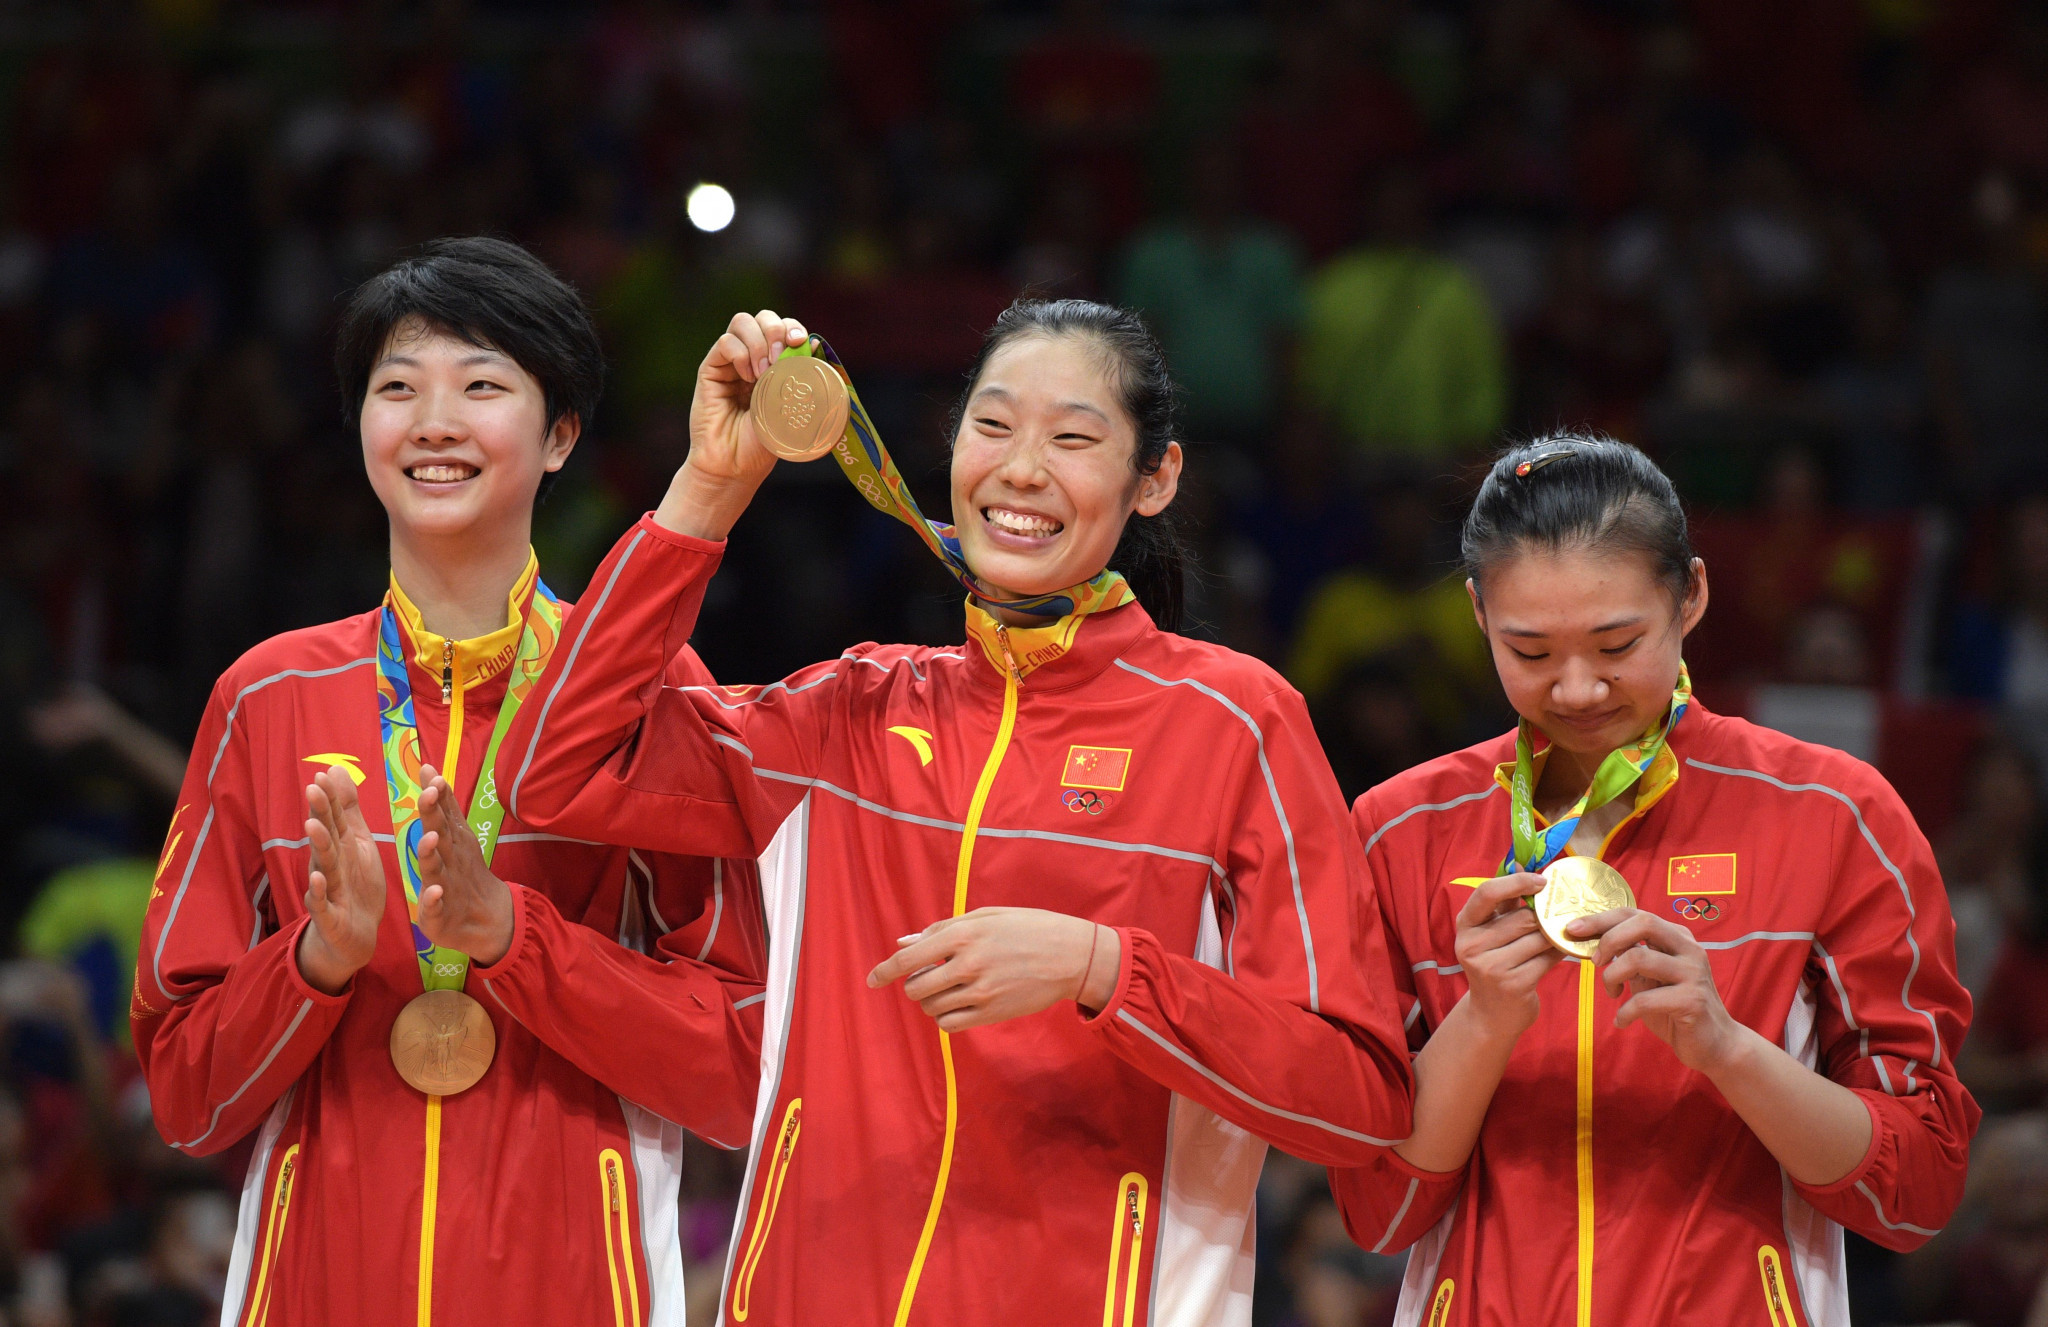 Yang Fangxu was a member of the Chinese team which won the gold medal at Rio 2016 ©Getty Images